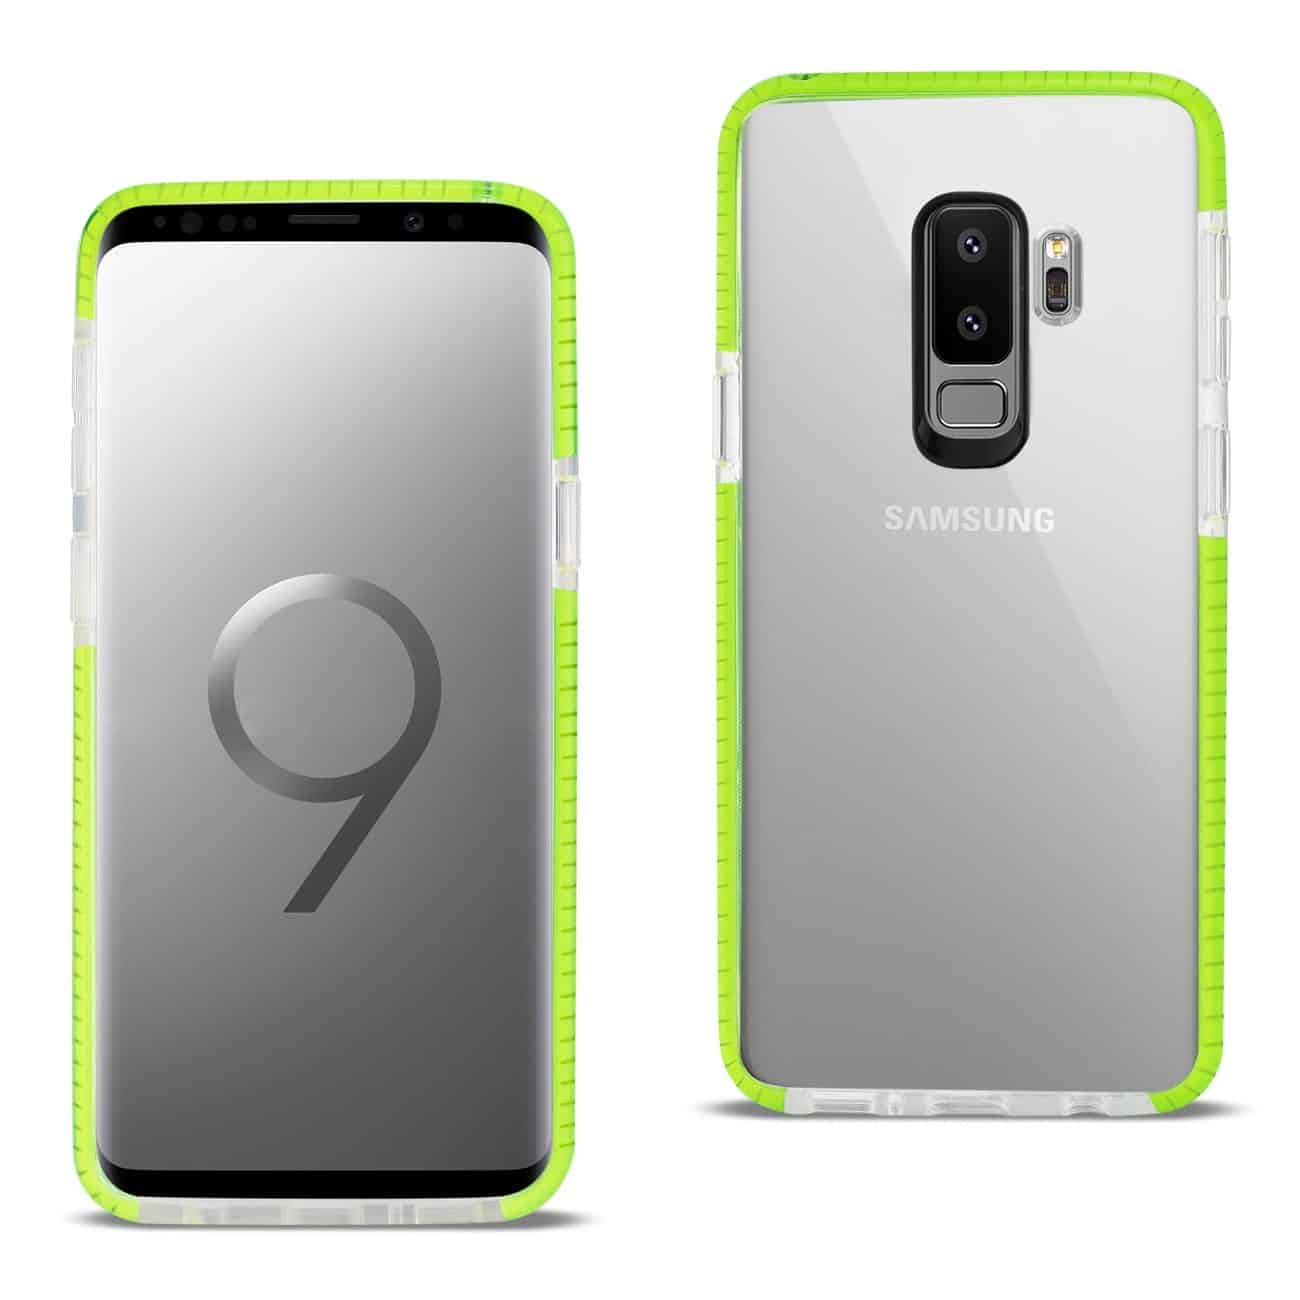 Samsung Galaxy S9 Plus Soft Transparent TPU Case In Clear Green